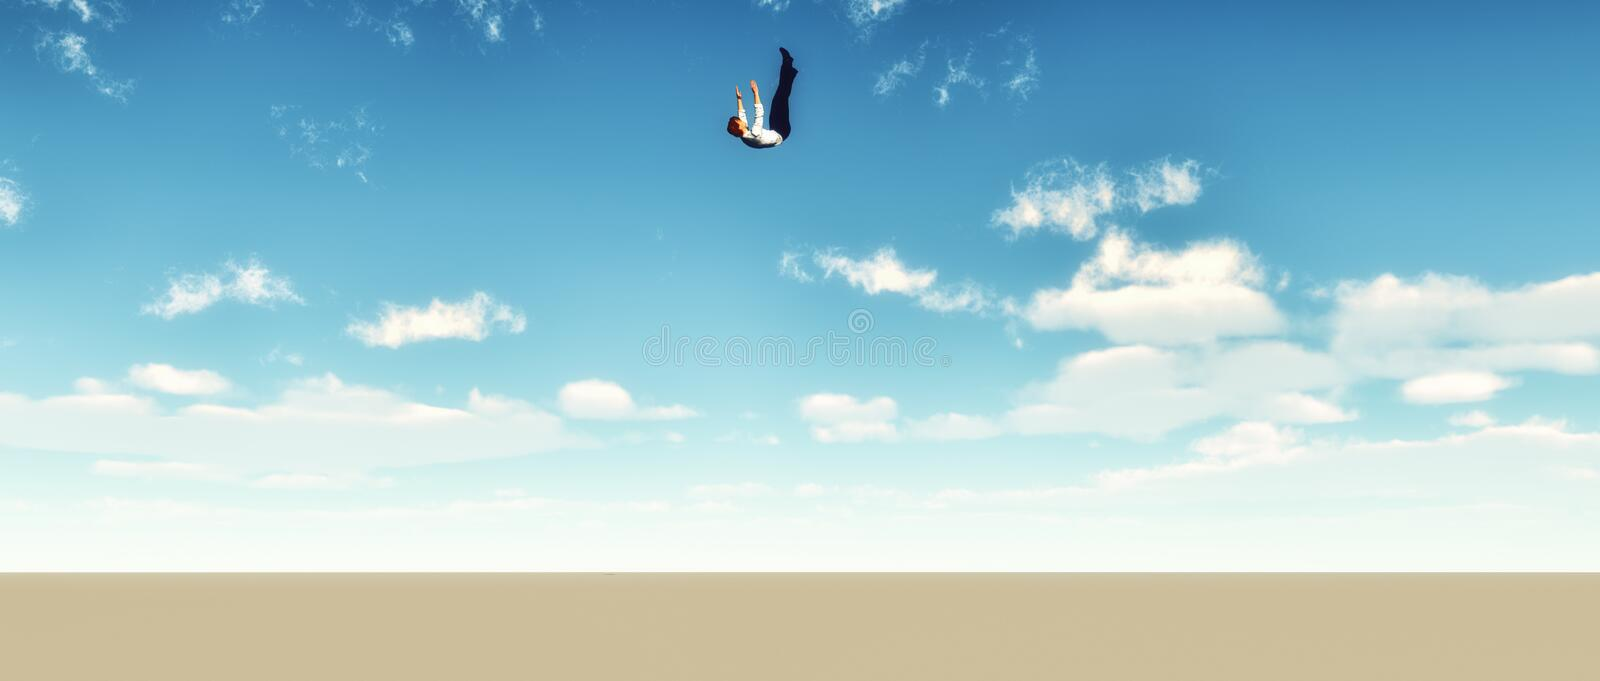 Falling man from sky. Crashing falling businessman in free fall from the blue sky vector illustration